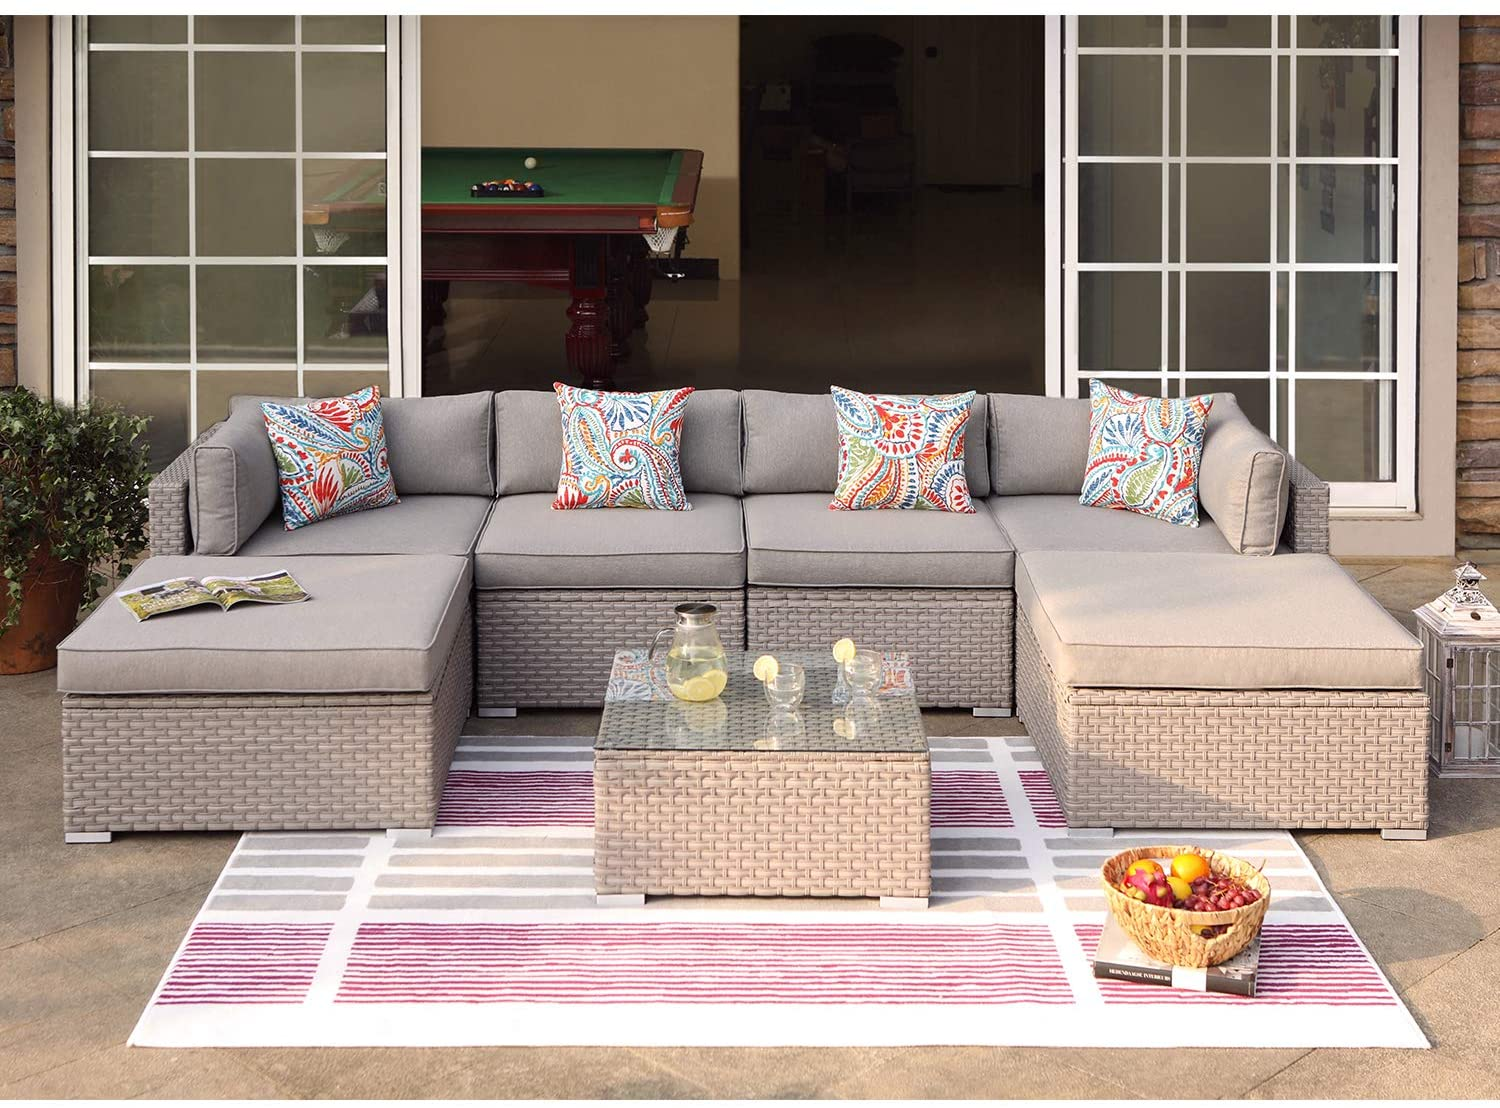 COSIEST 7-Piece Outdoor Furniture Warm Max 80% OFF Wicker Family Gray online shopping Sectio